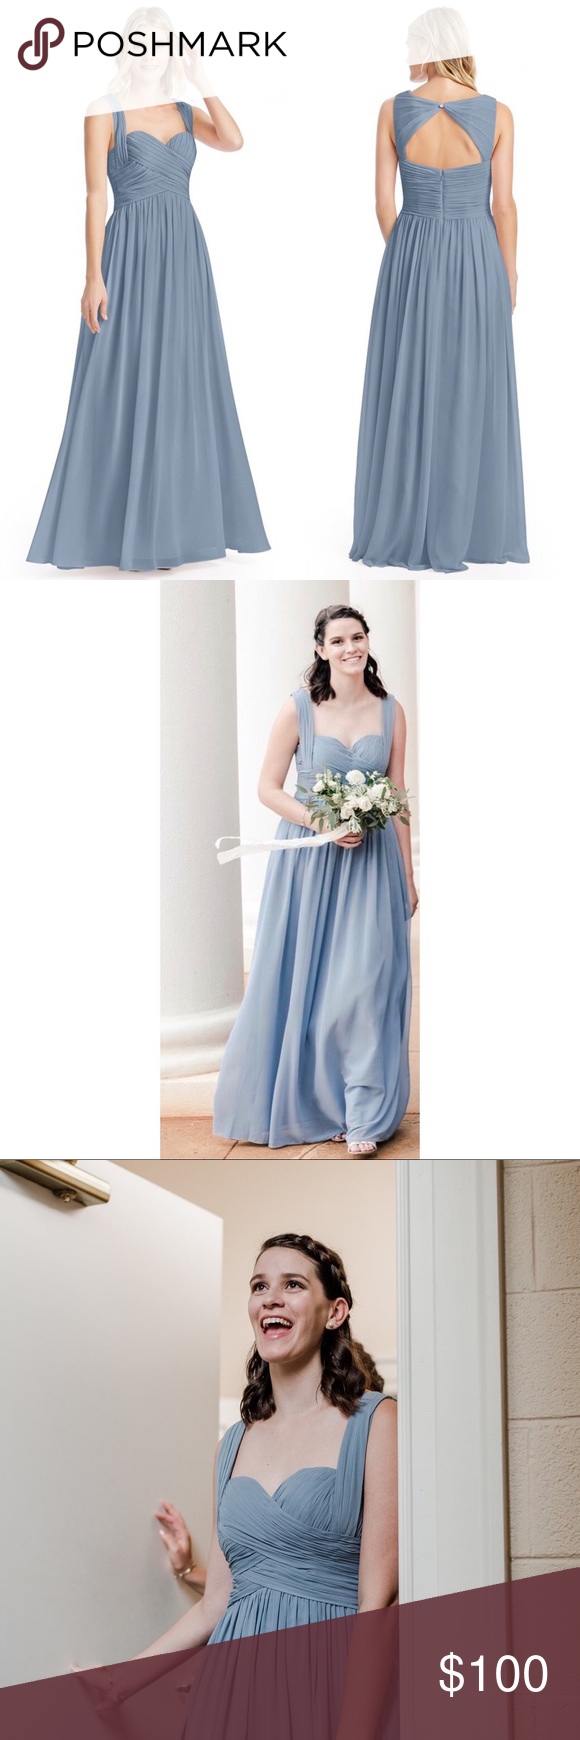 dd50cdd8645 Azazie Cameron Bridesmaid Dress Dusty Blue Worn once   completely  unaltered! Size A8 in Dusty blue. Just needs to be dry cleaned! Azazie  Dresses Wedding